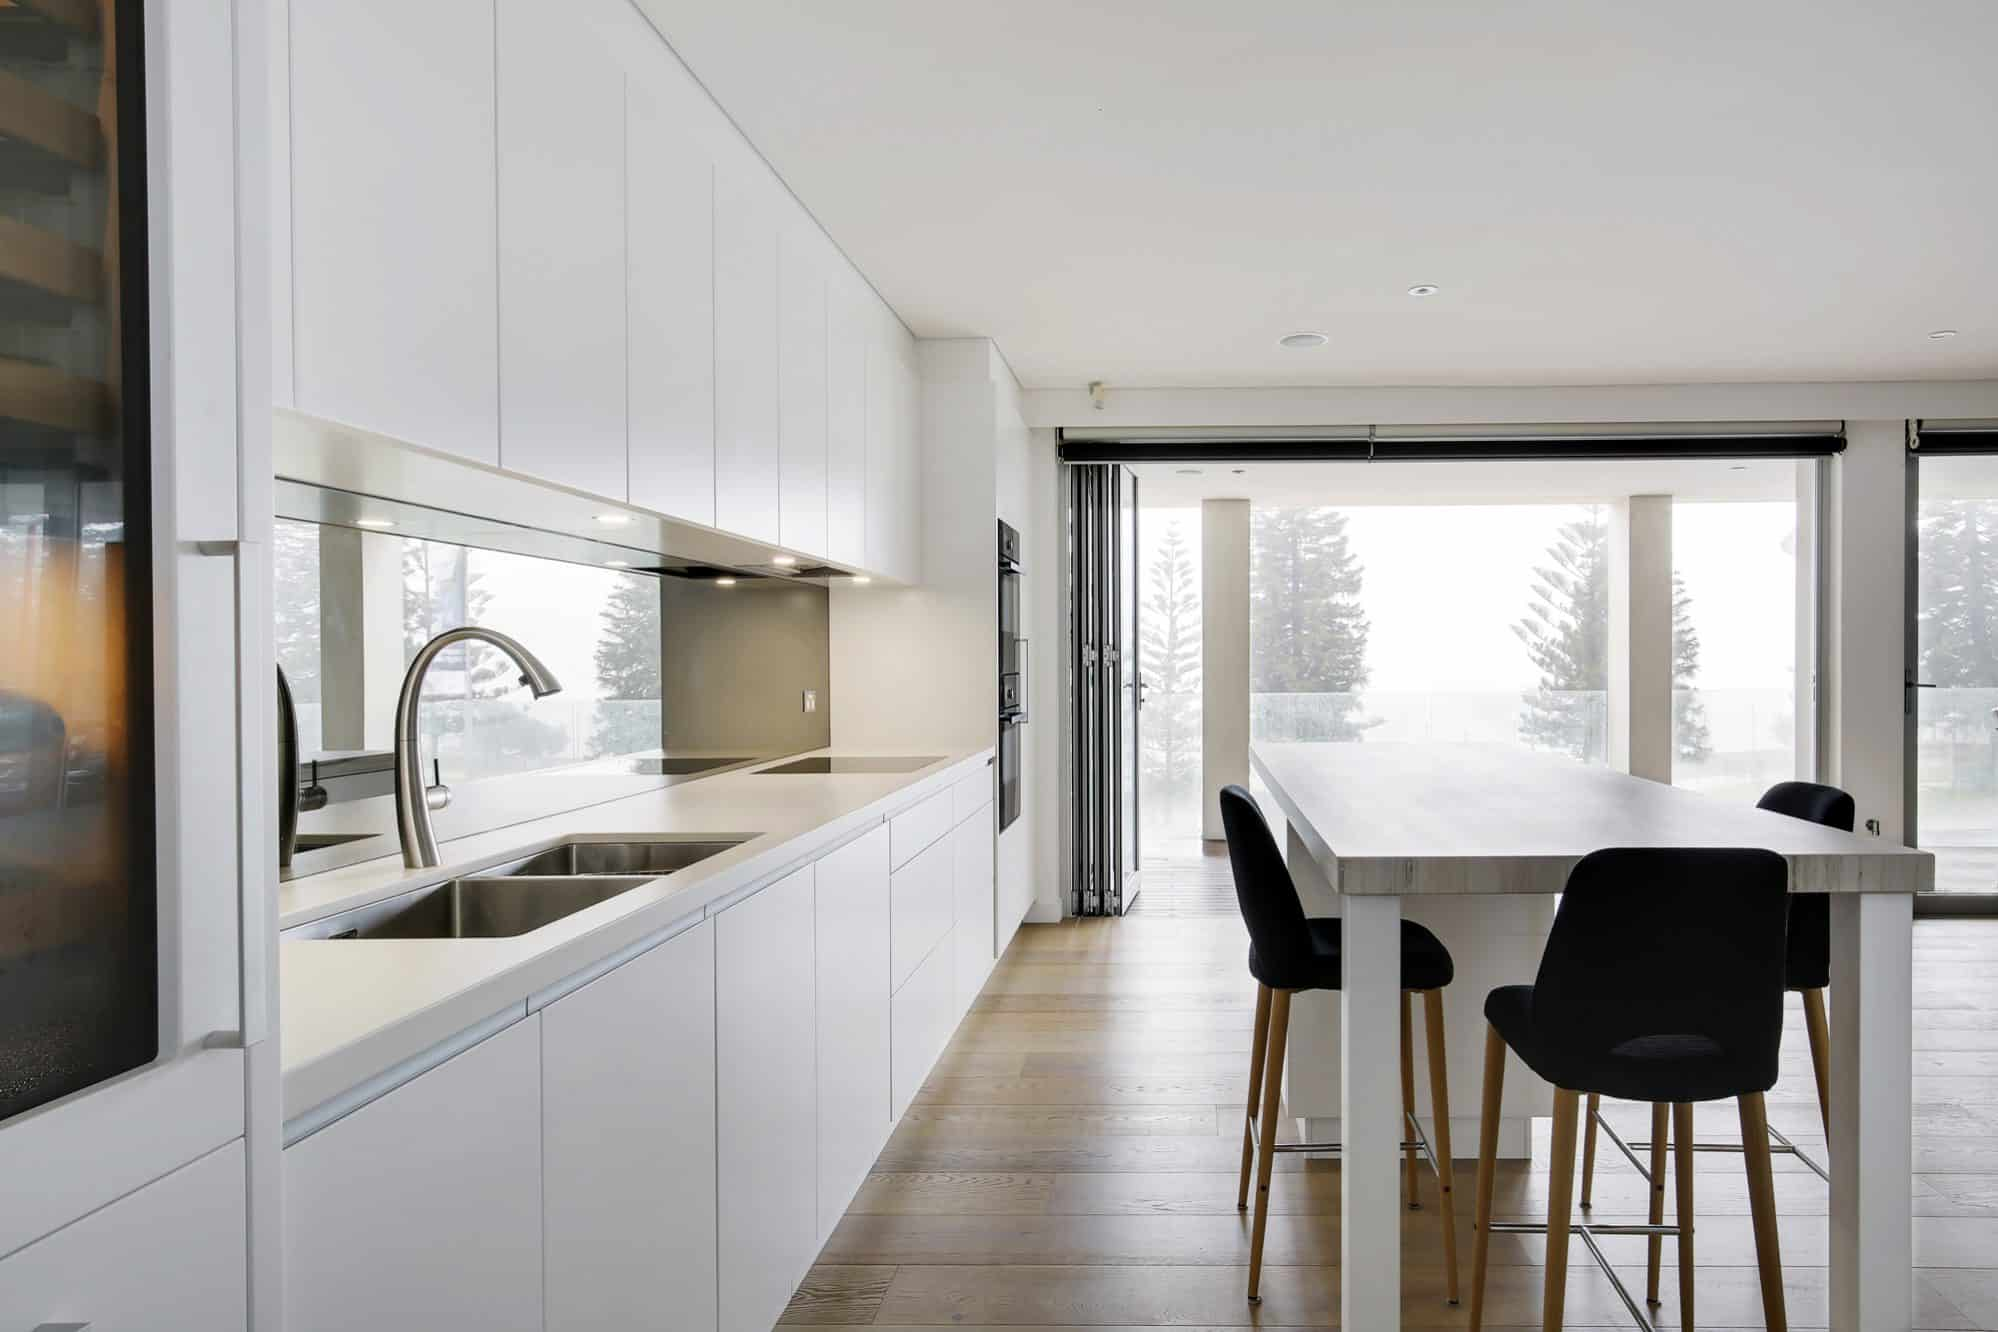 Coogee Beach Apartment Kitchen feature large